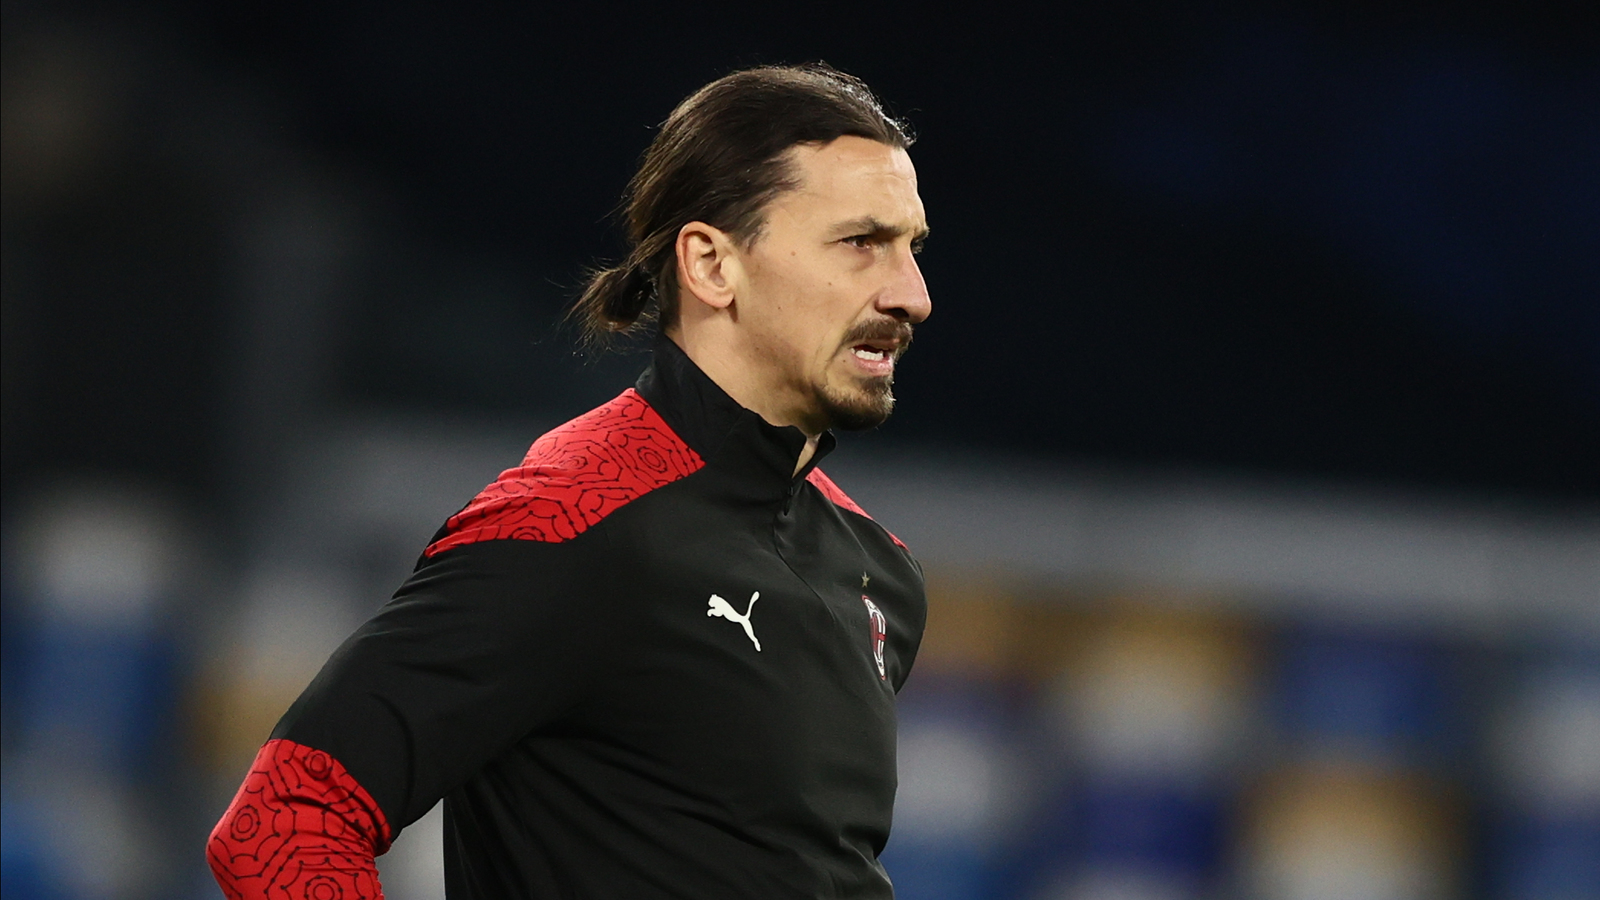 Zlatan Ibrahimovic, Gareth Bale hit out at EA Sports over likenesses in 'FIFA 21'